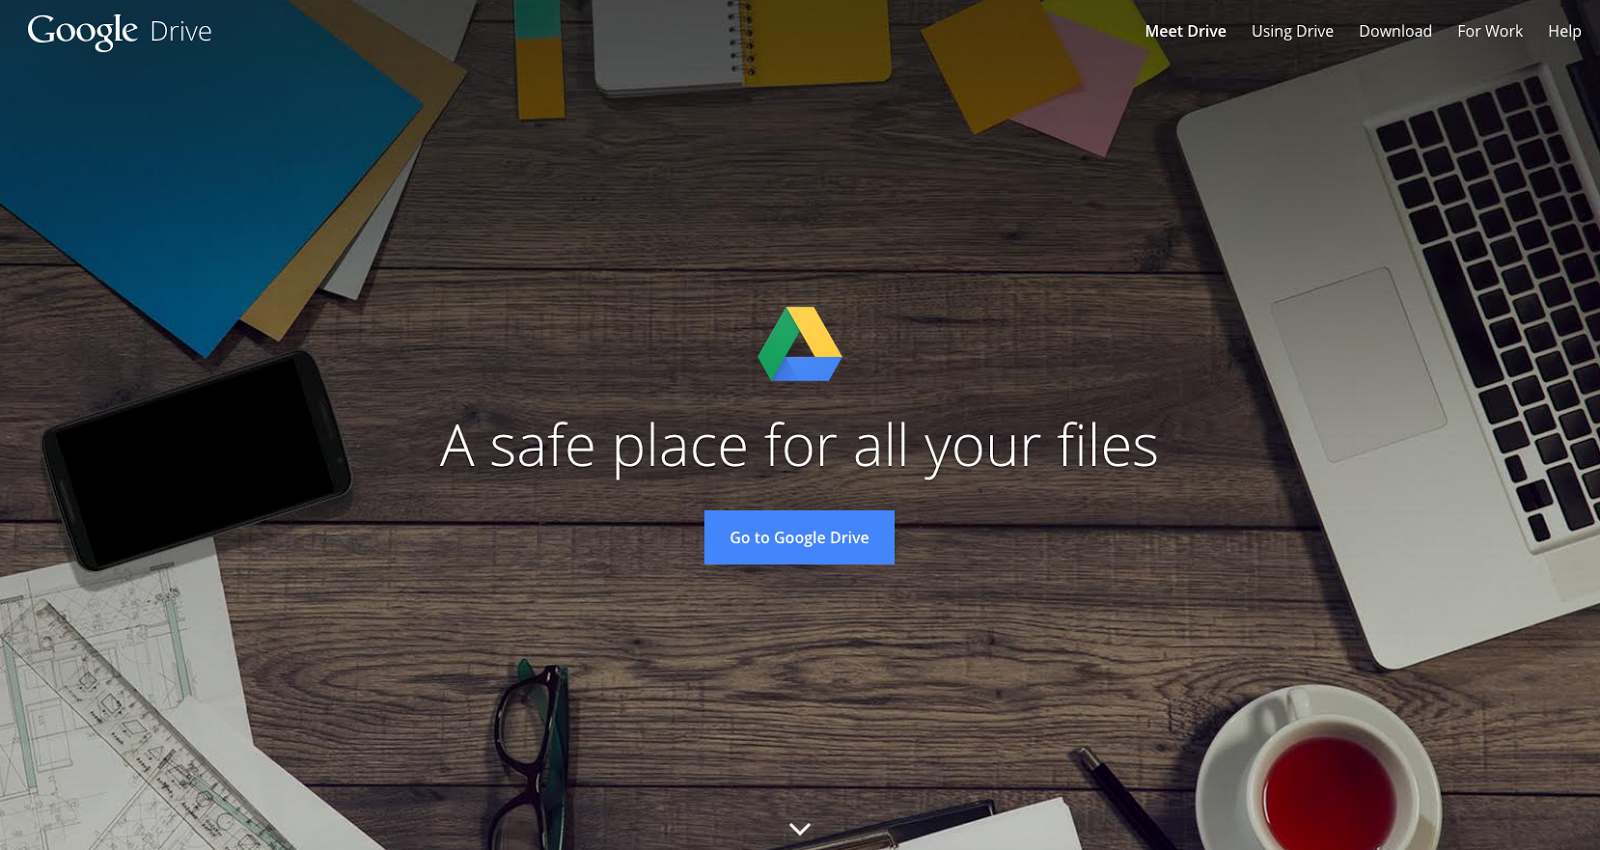 saas-value-propositions-7-google-drive